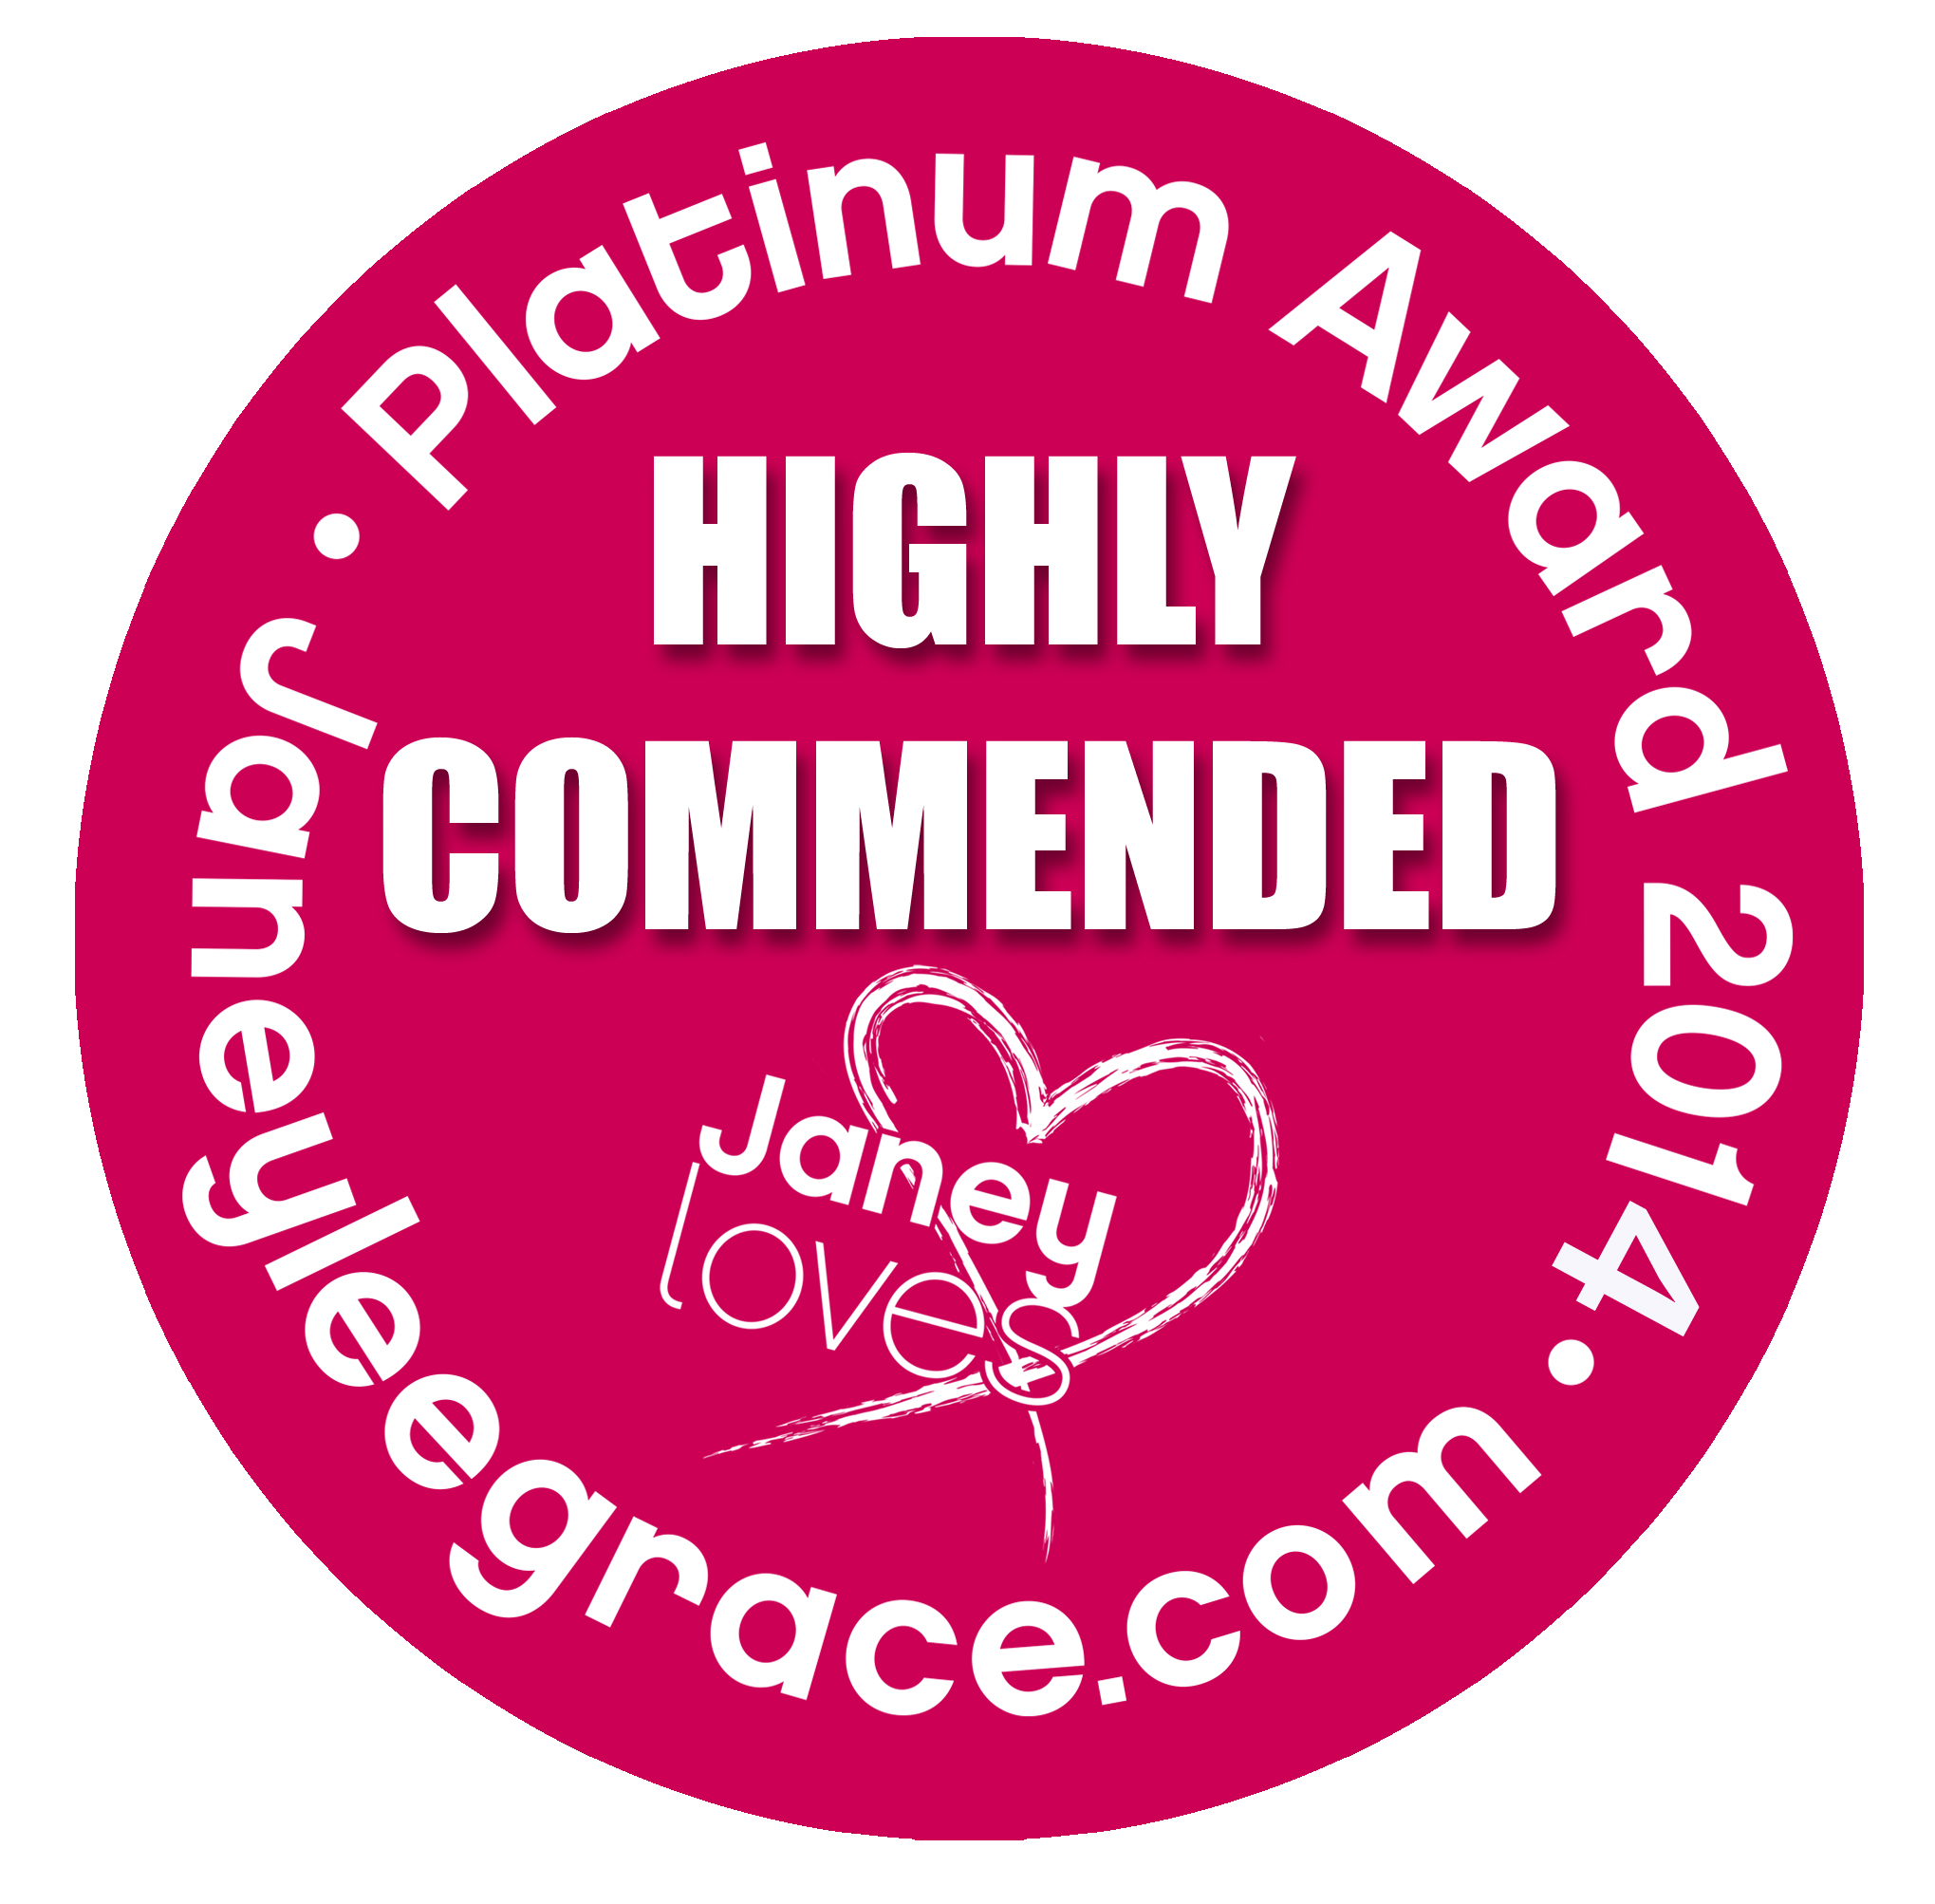 Janey Loves 2014 Platinum Award